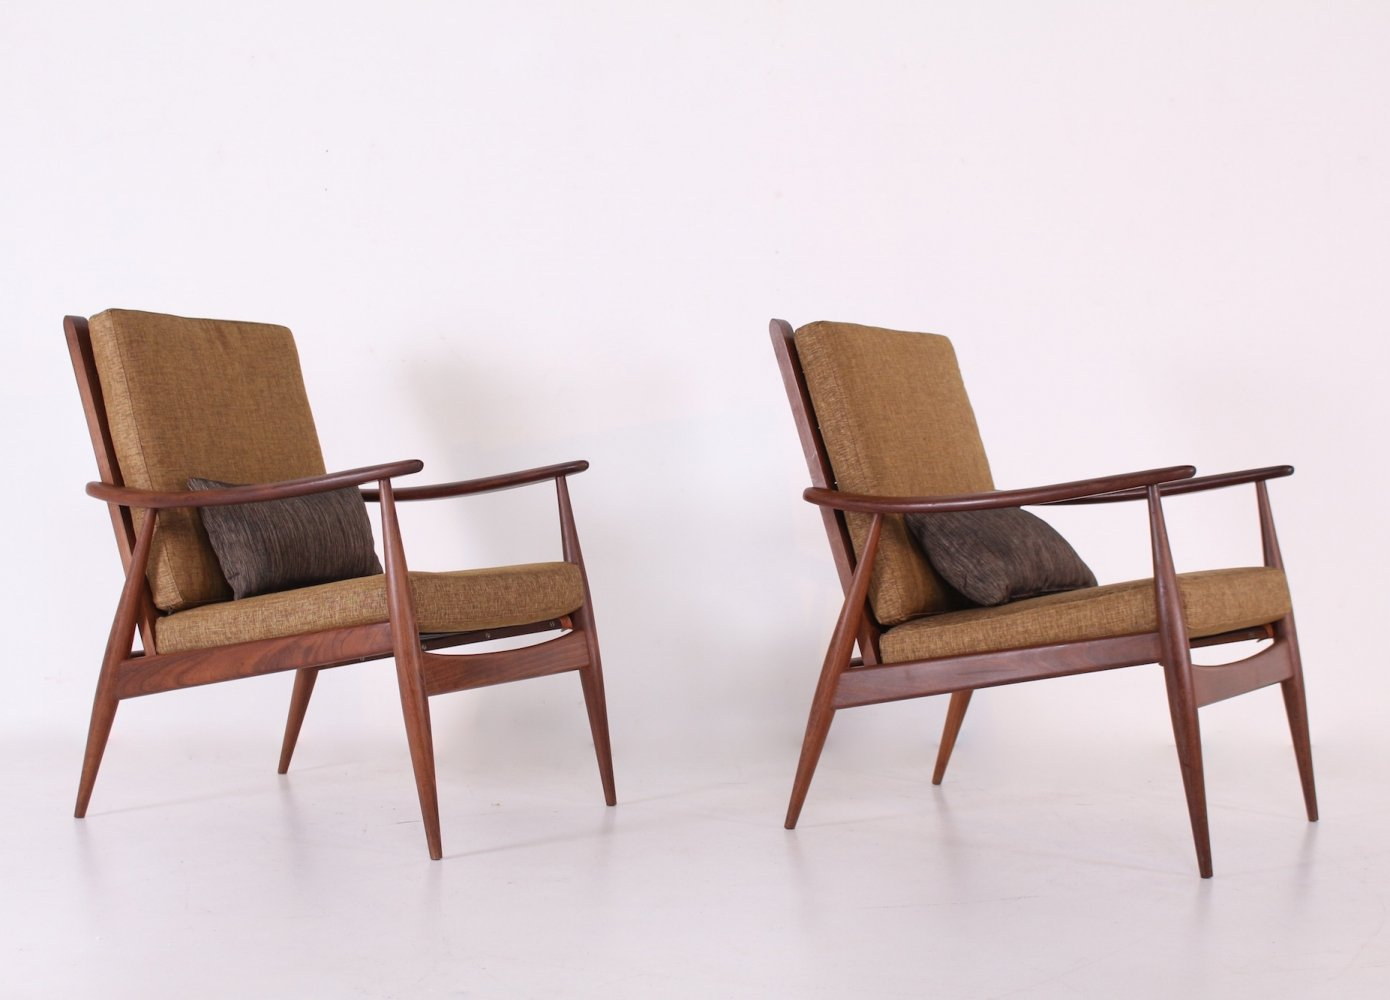 Pair of Rosewood scandinavian easy chairs, 1960